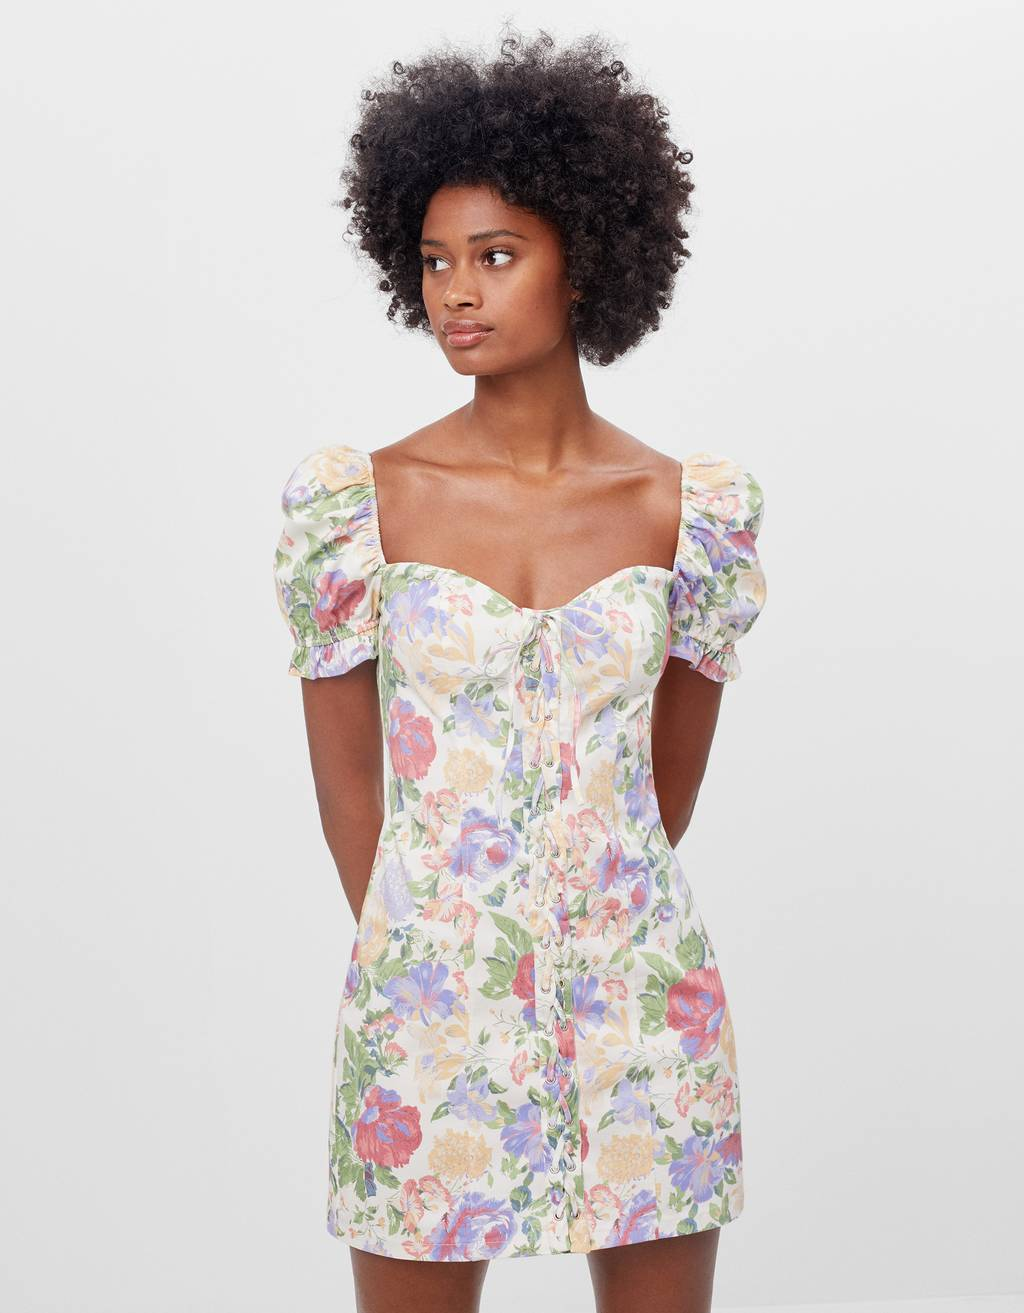 Floral print dress with ties